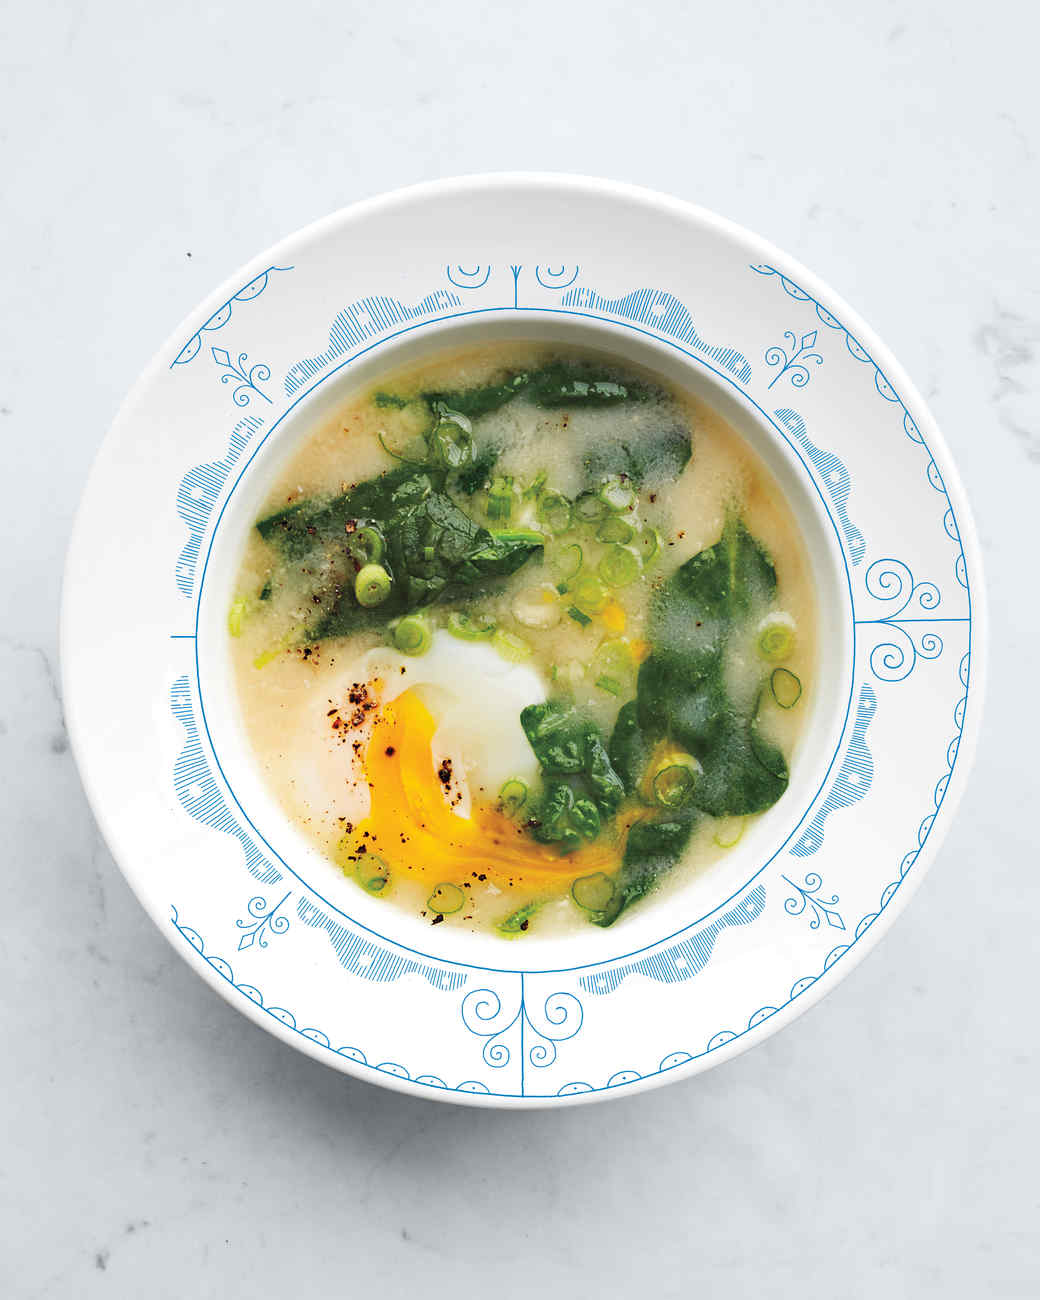 breakfast-soup-021-d111891.jpg